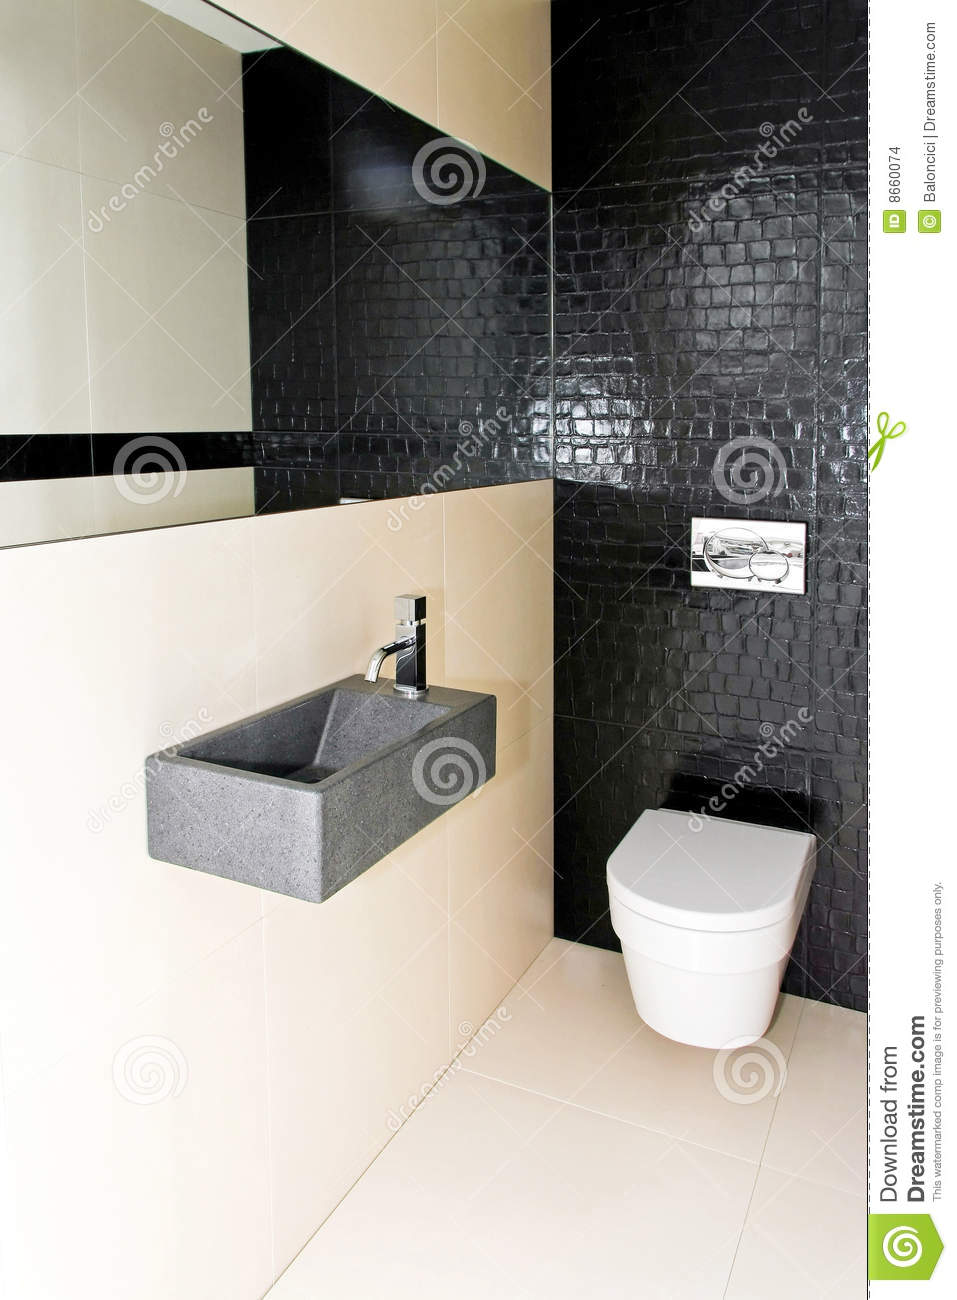 Small toilet 2 stock photo Image of stylish ceramics